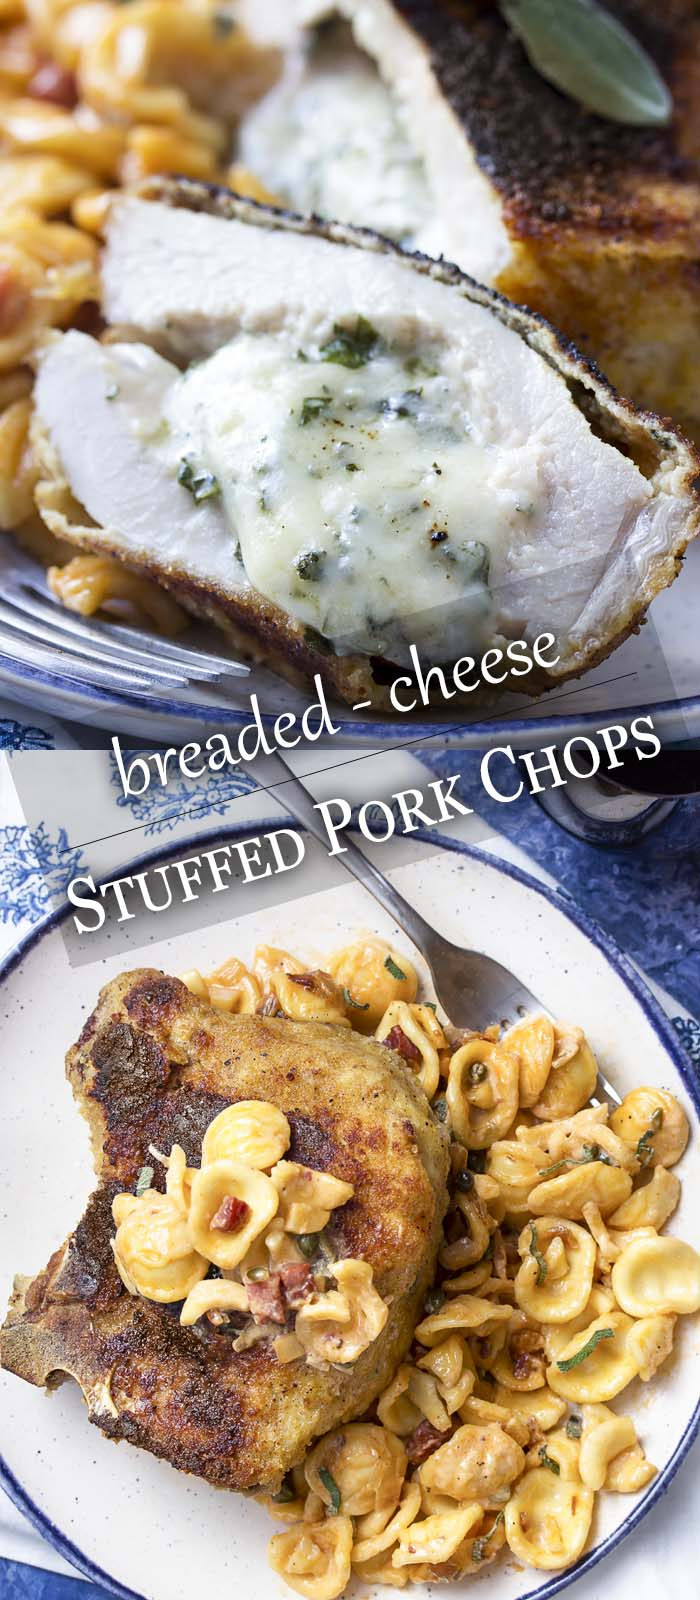 Pork chop on a plate and cut open showing the stuffing with text overlay - Stuffed Pork Chops.